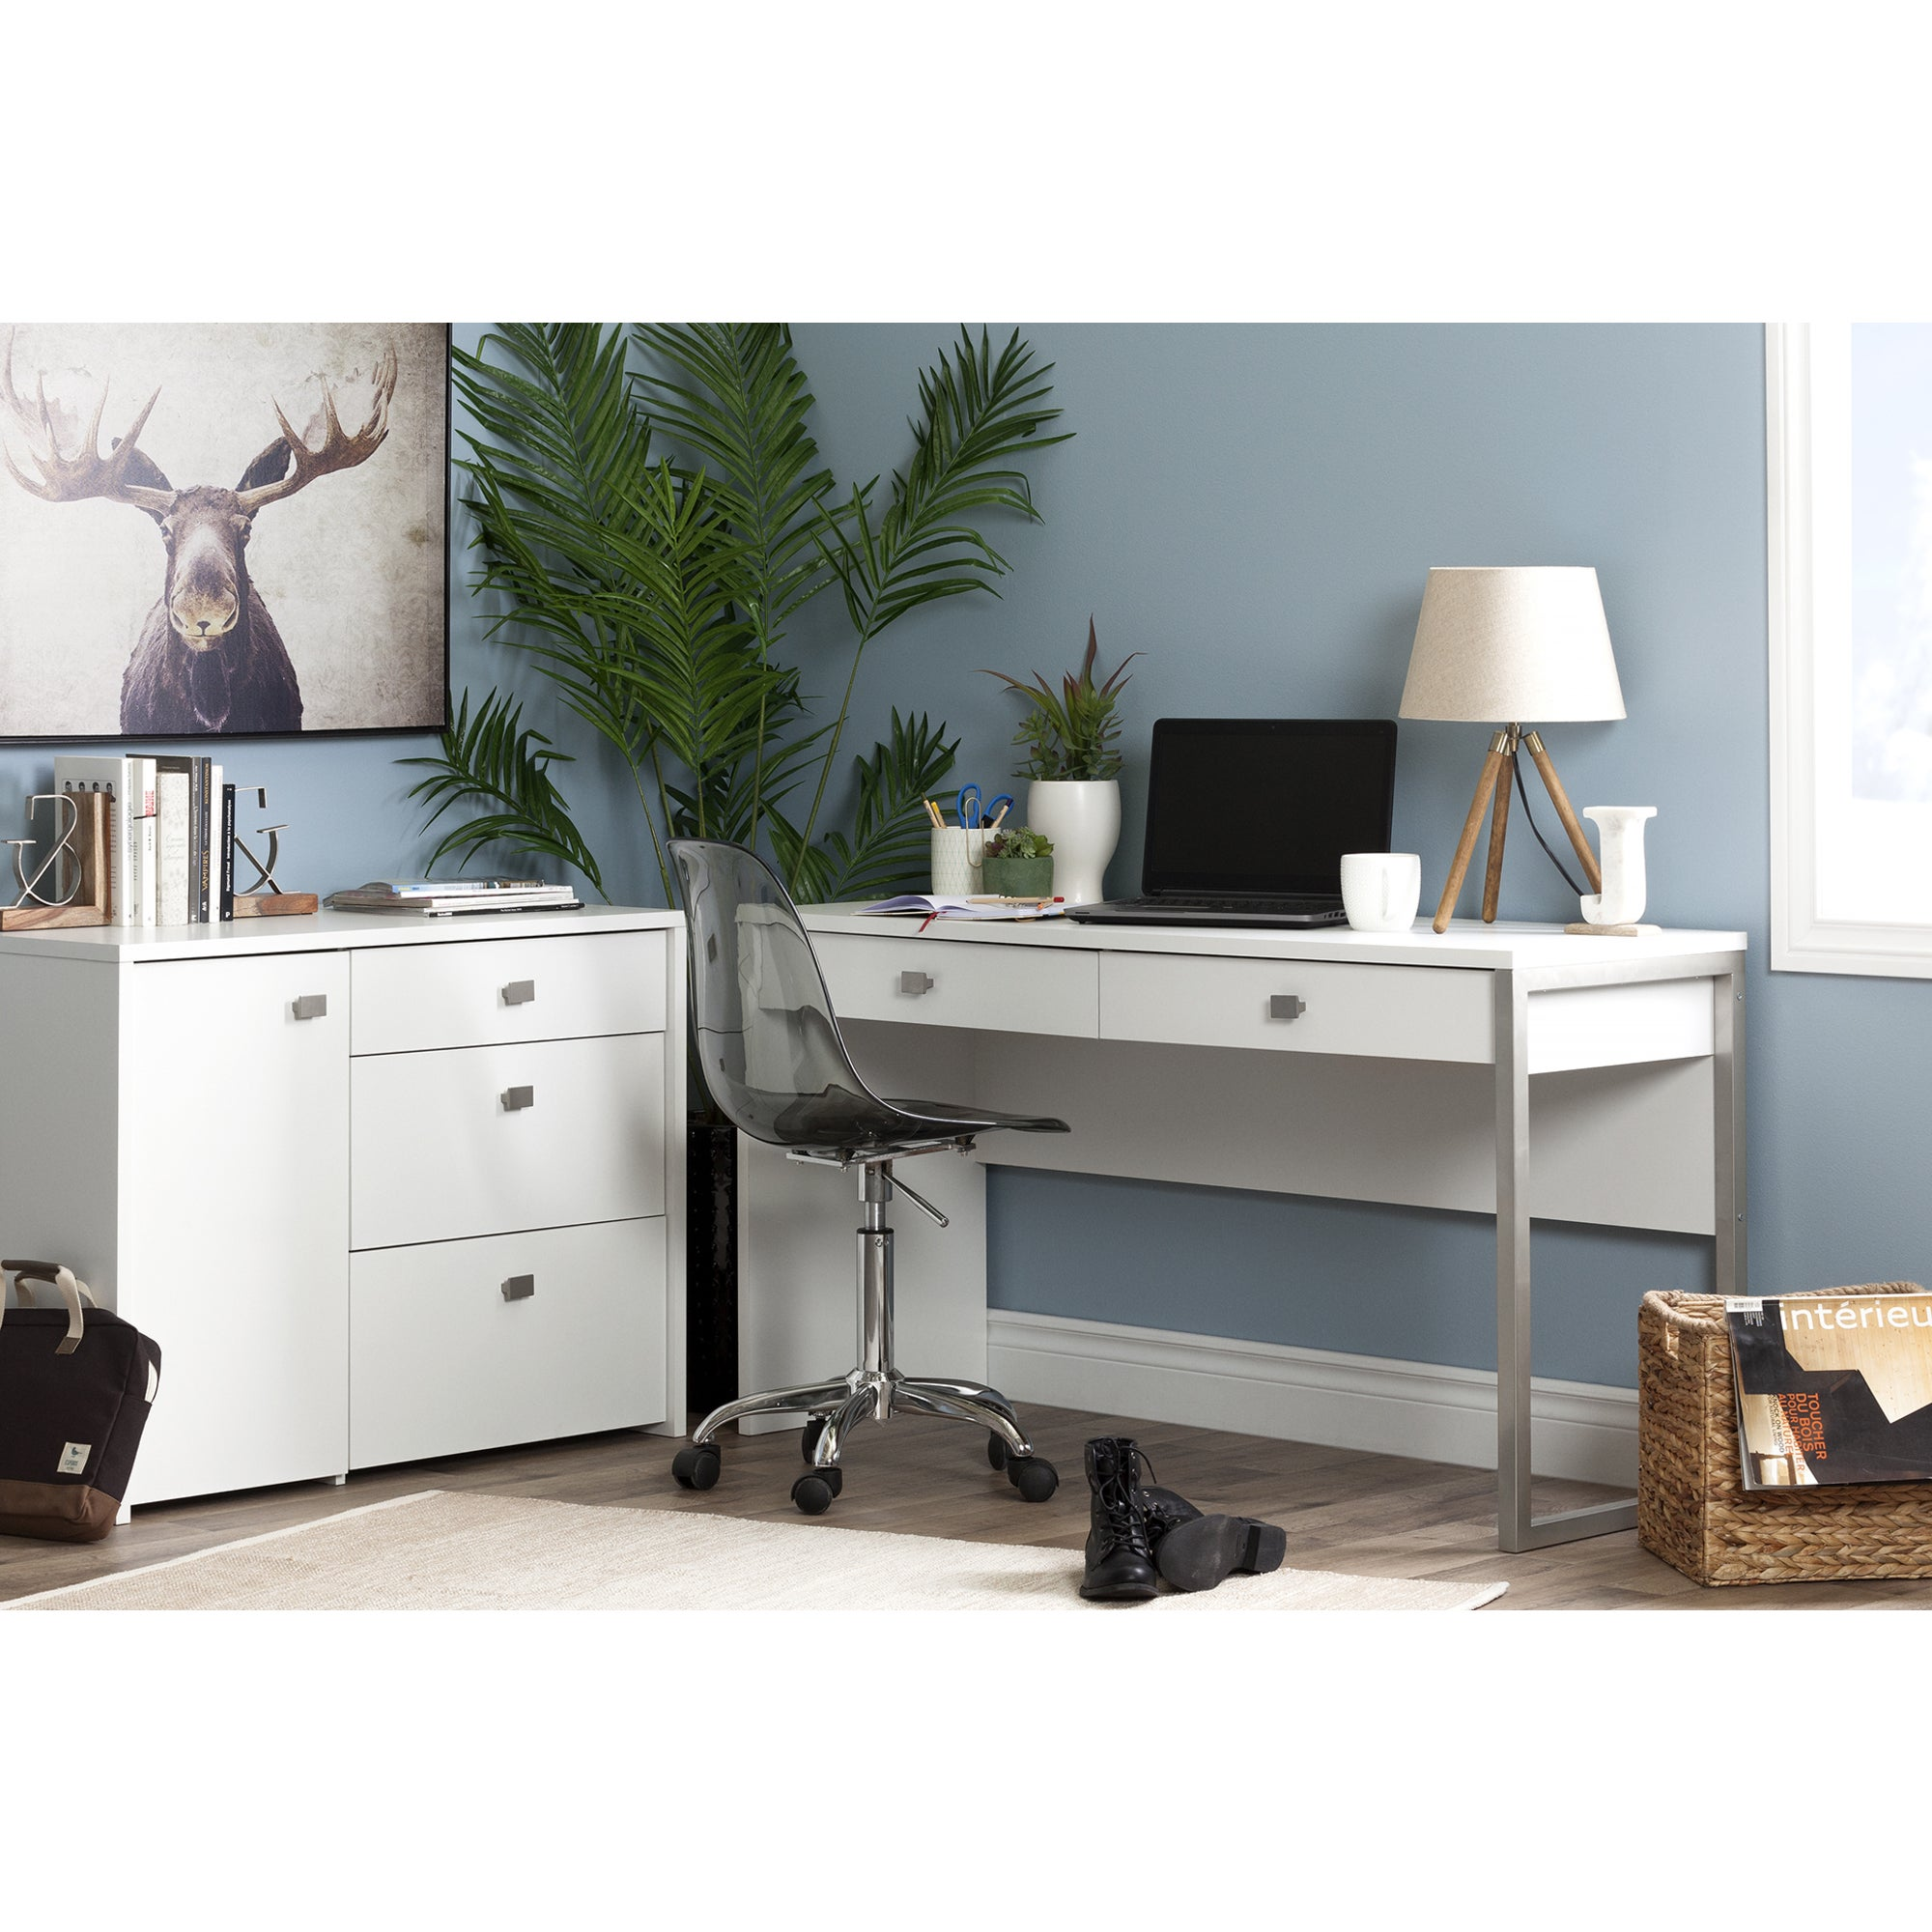 images interior file accent woodworking home e secretary drawer plus small desk elegant with inc modern of to wel stylish luxury